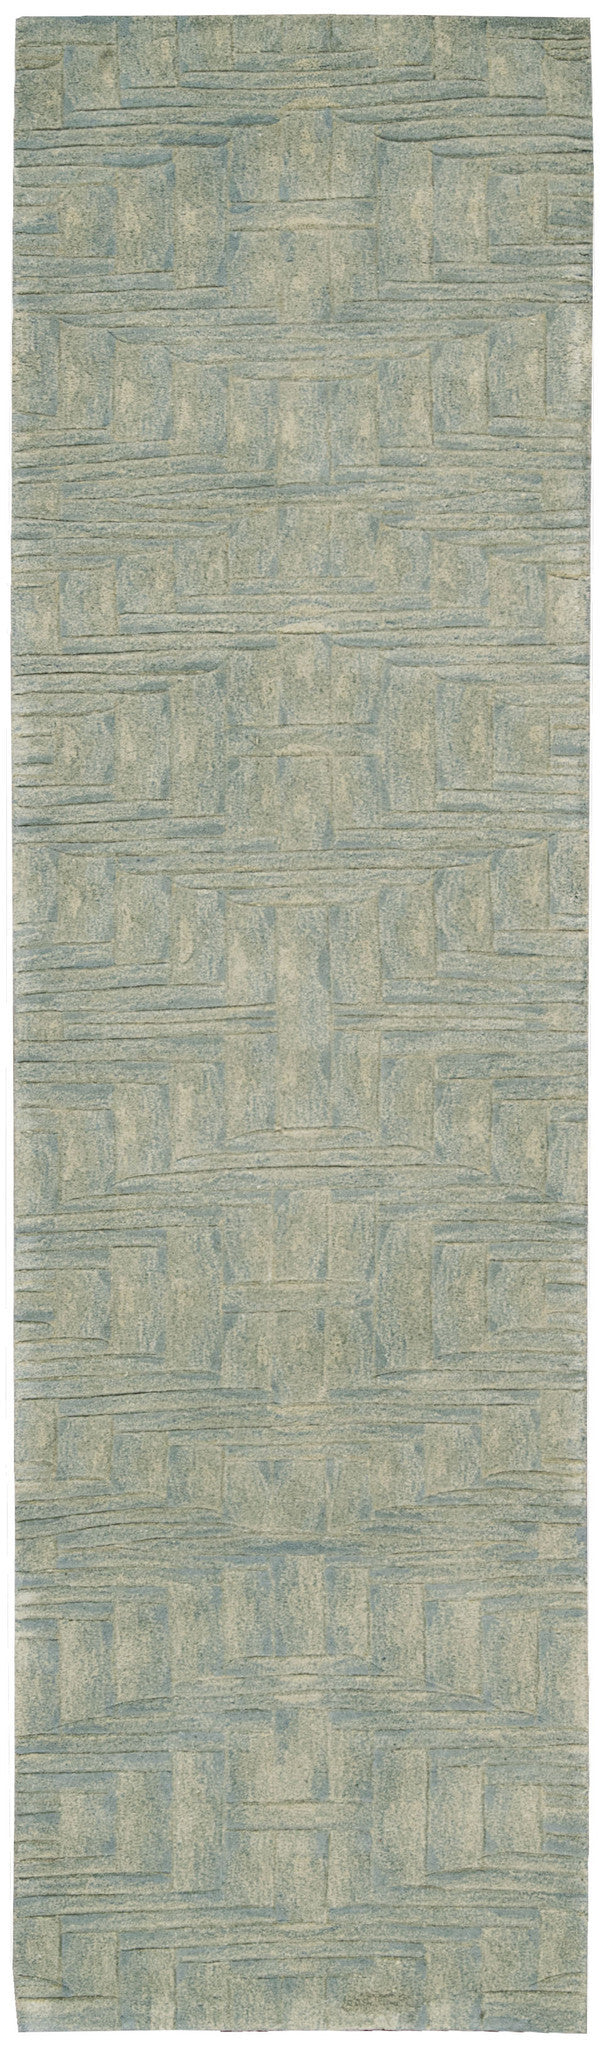 Nourison Moda Breeze Area Rug MOD02 BREEZ